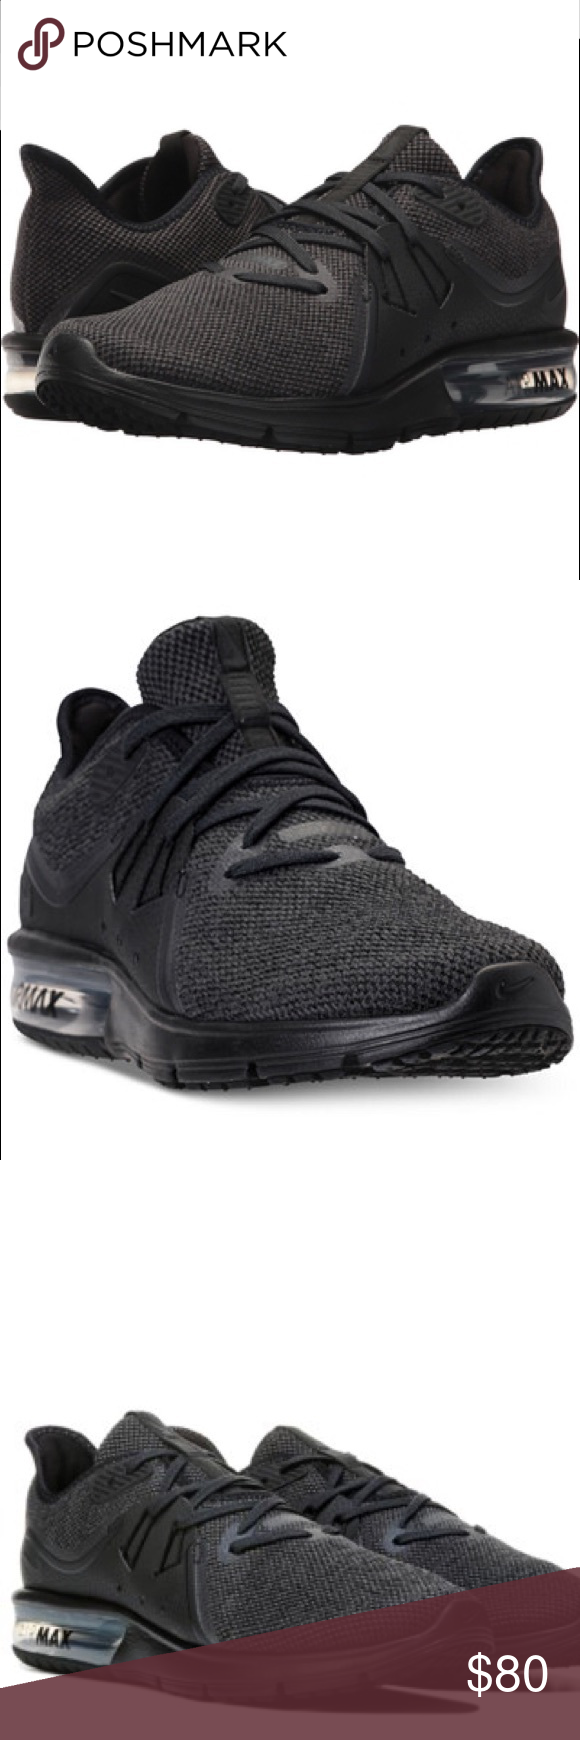 Mujeres Nike Air Air Max Sequent 3 Size 8 Negro Air Air Max Deportivo 874d94